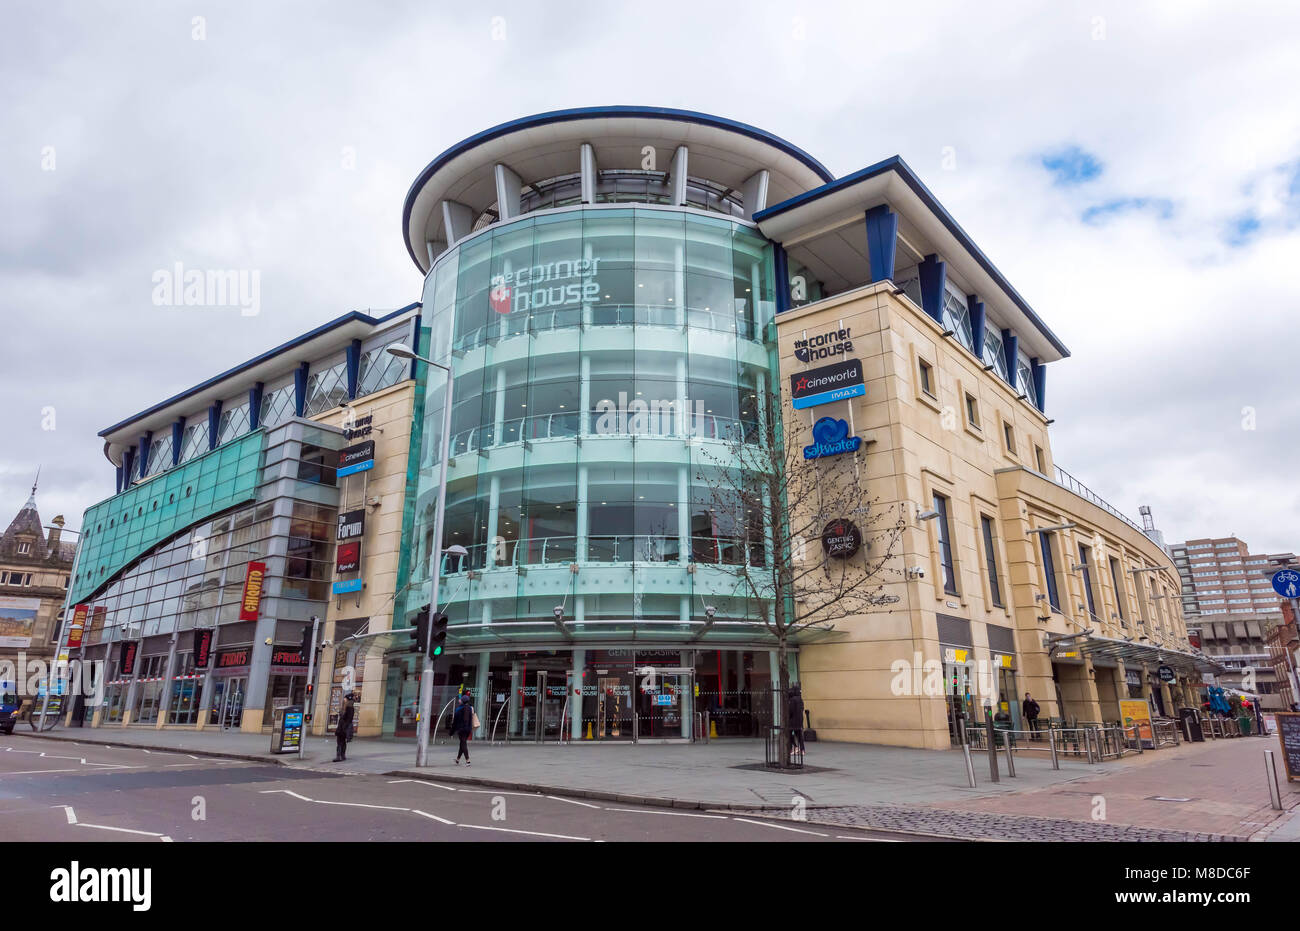 Corner House in Nottingham - England - Stock Image